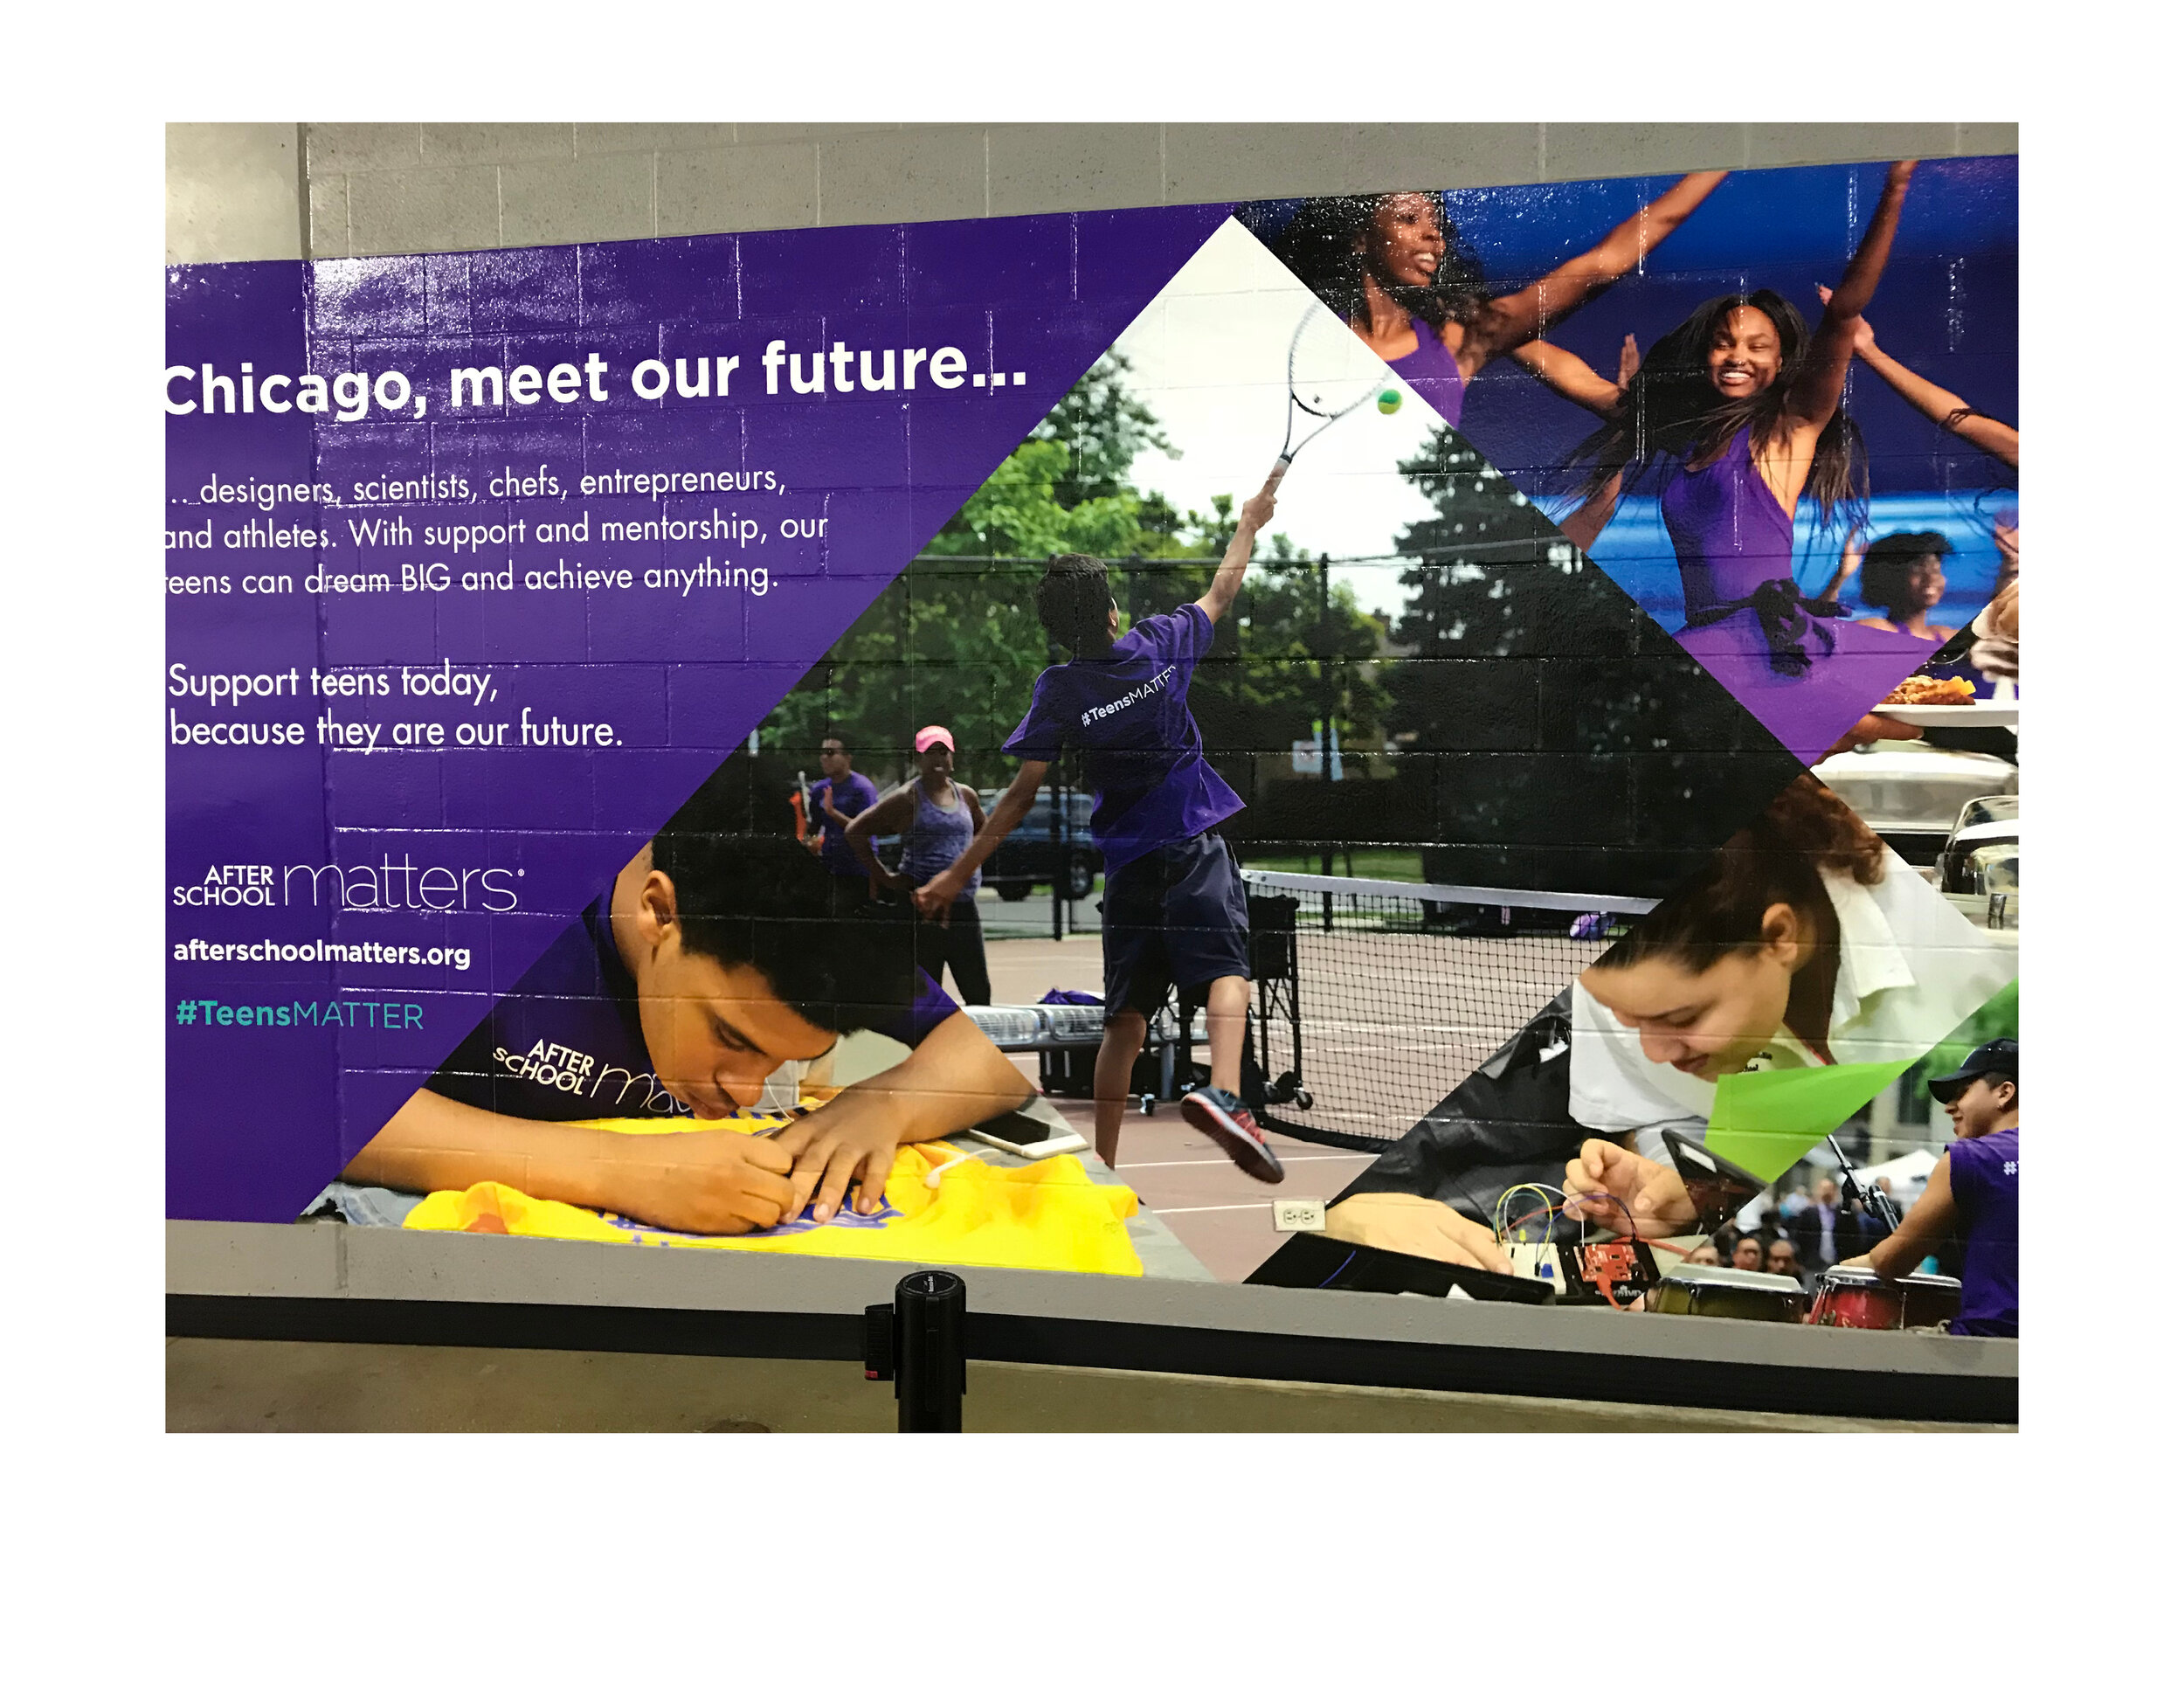 """Chicago Meet Our Future"" Advertisement, White Sox Stadium, - After School Matters"